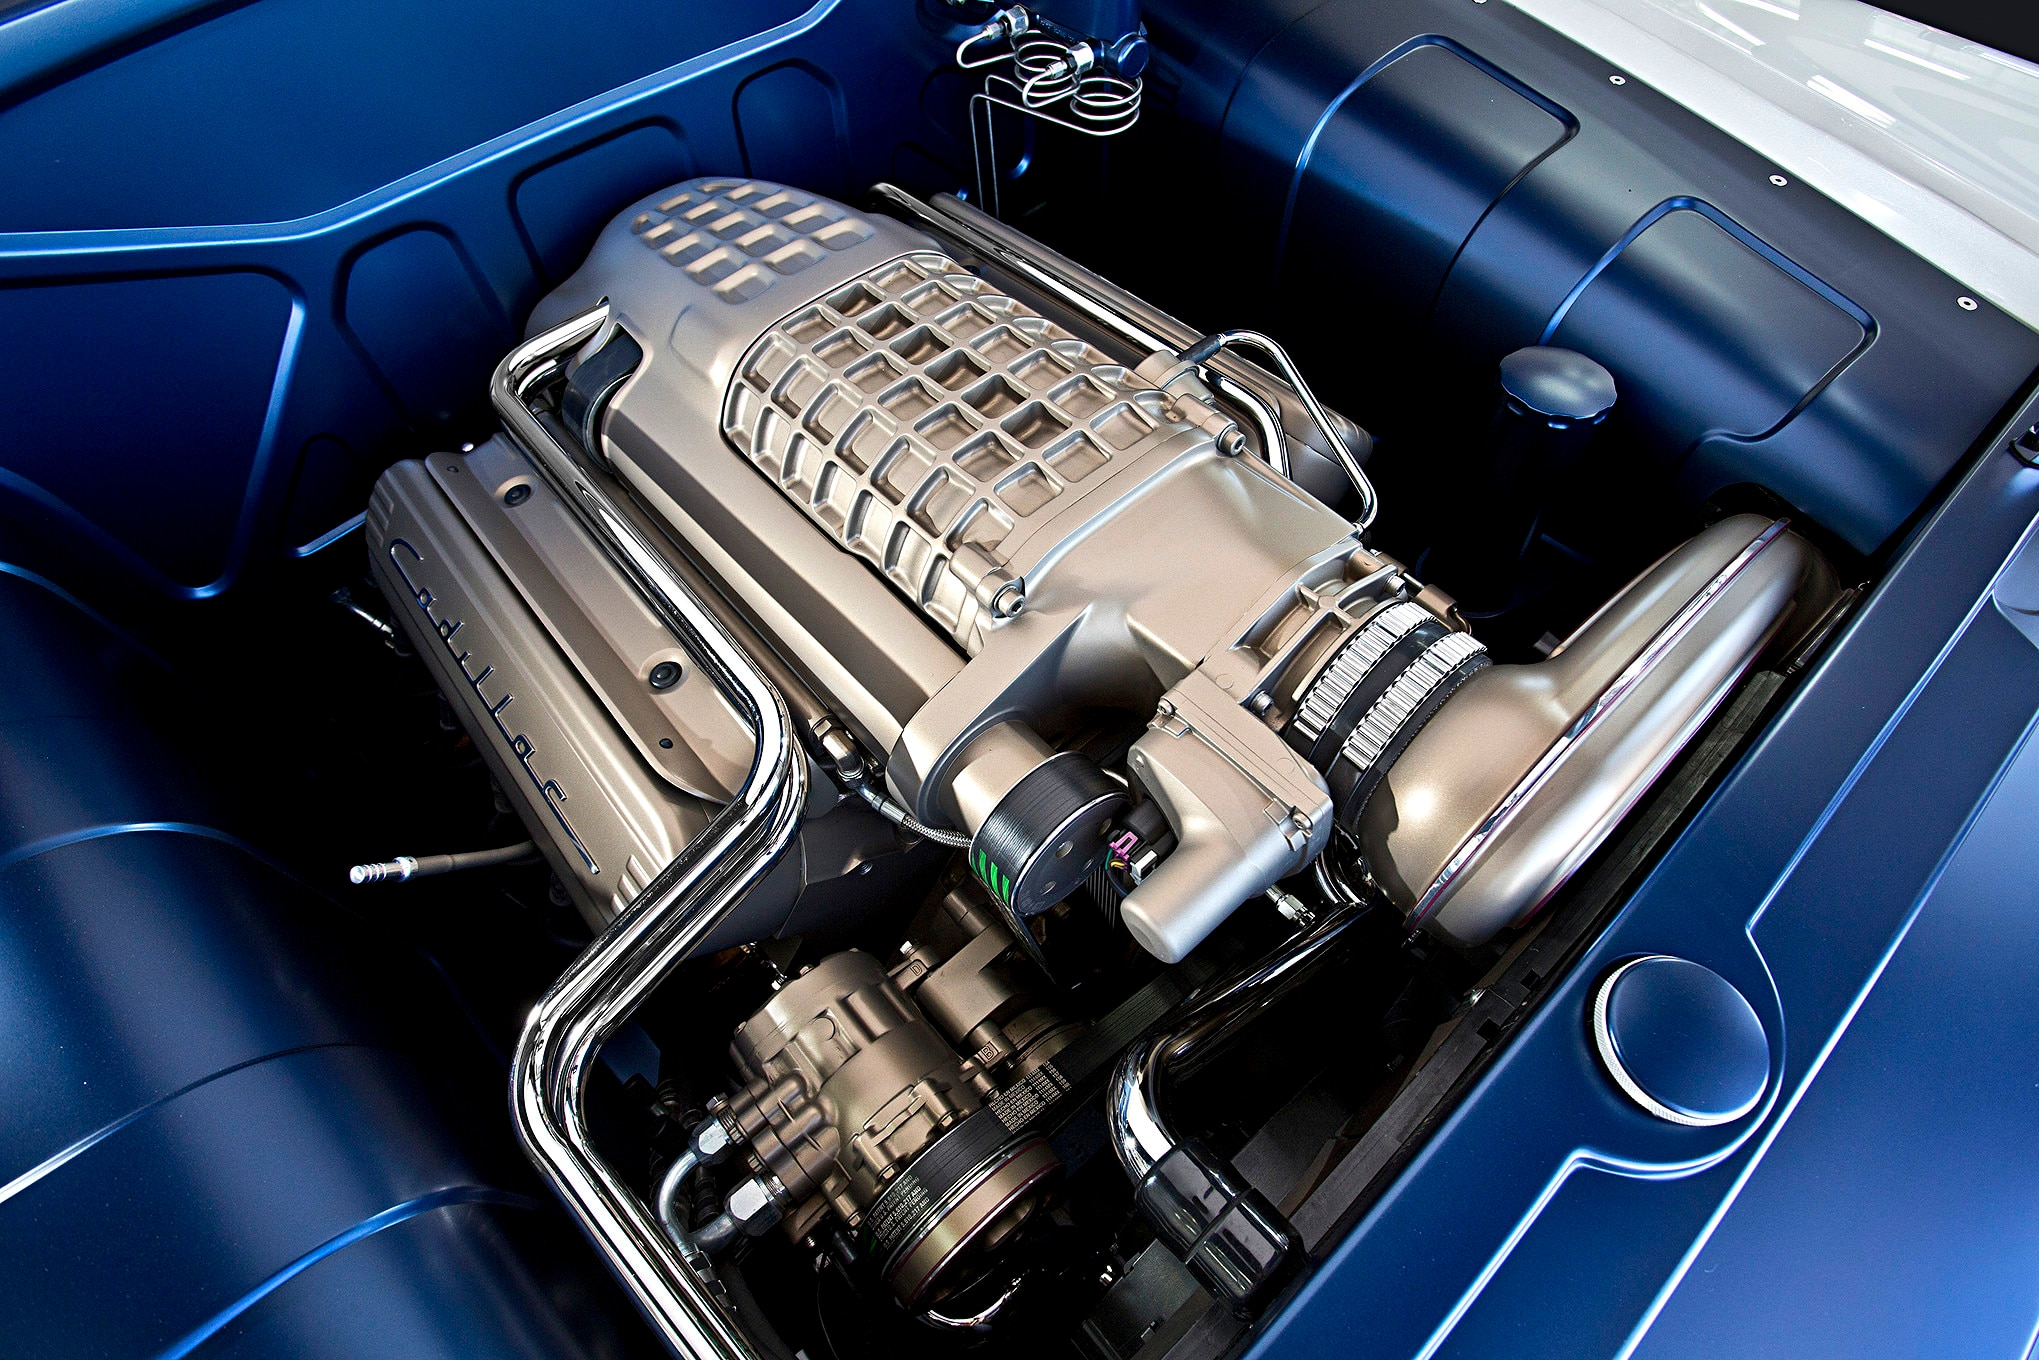 1949-cadillac-convertible-supercharged-lsx-engine-bay